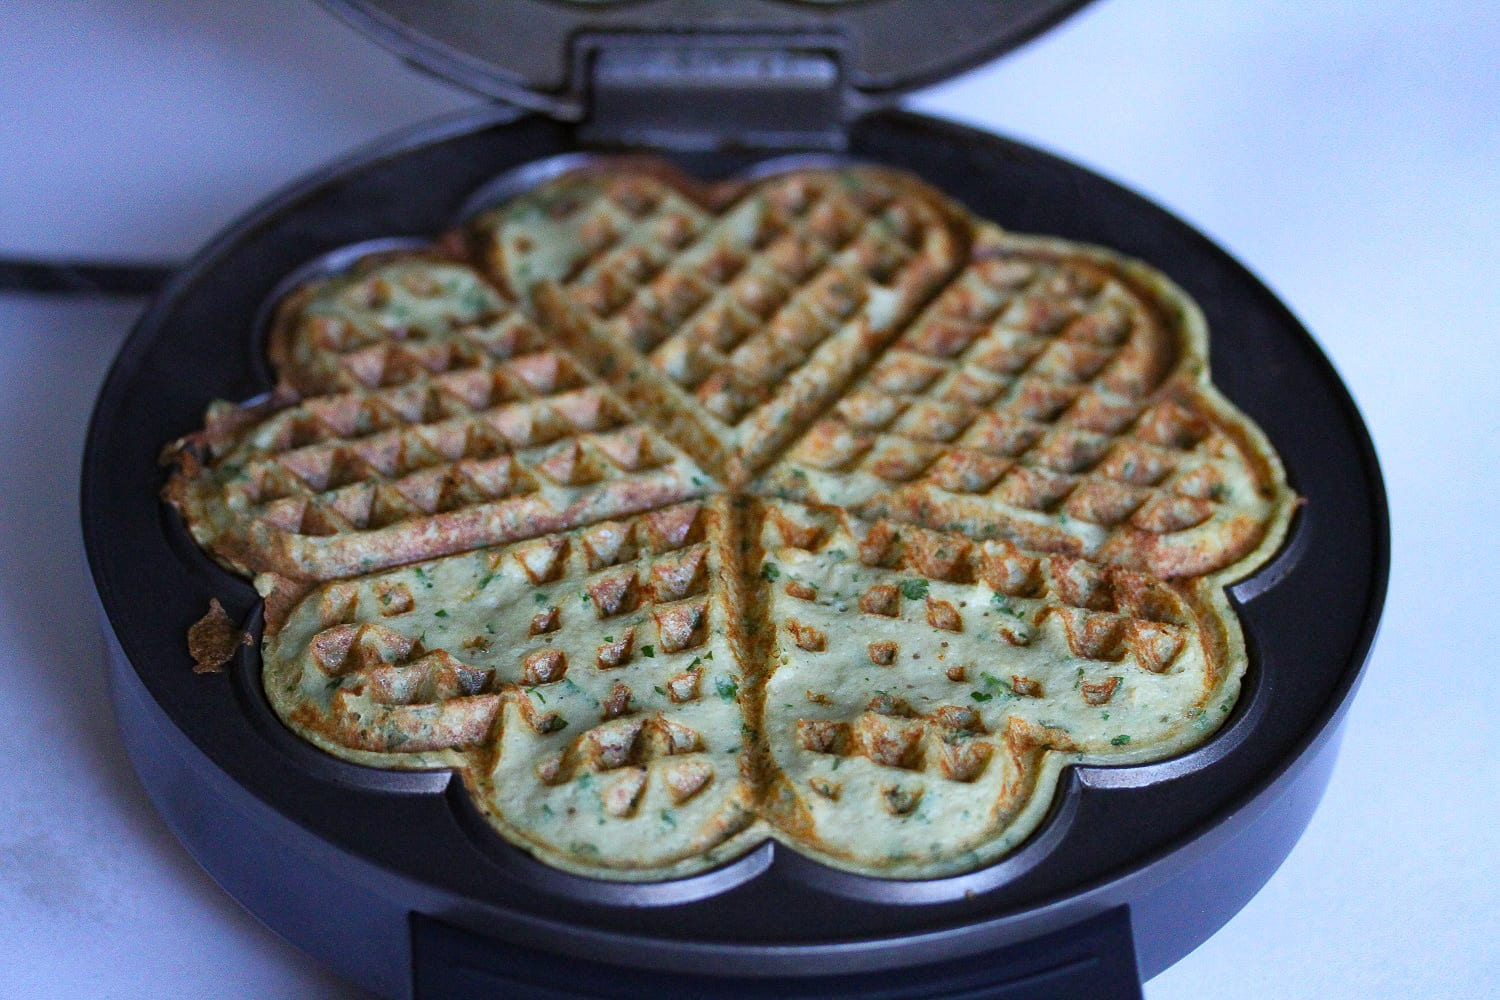 Savoury waffles - healthy kids recipes - aubergine and feta - mixture in waffle iron